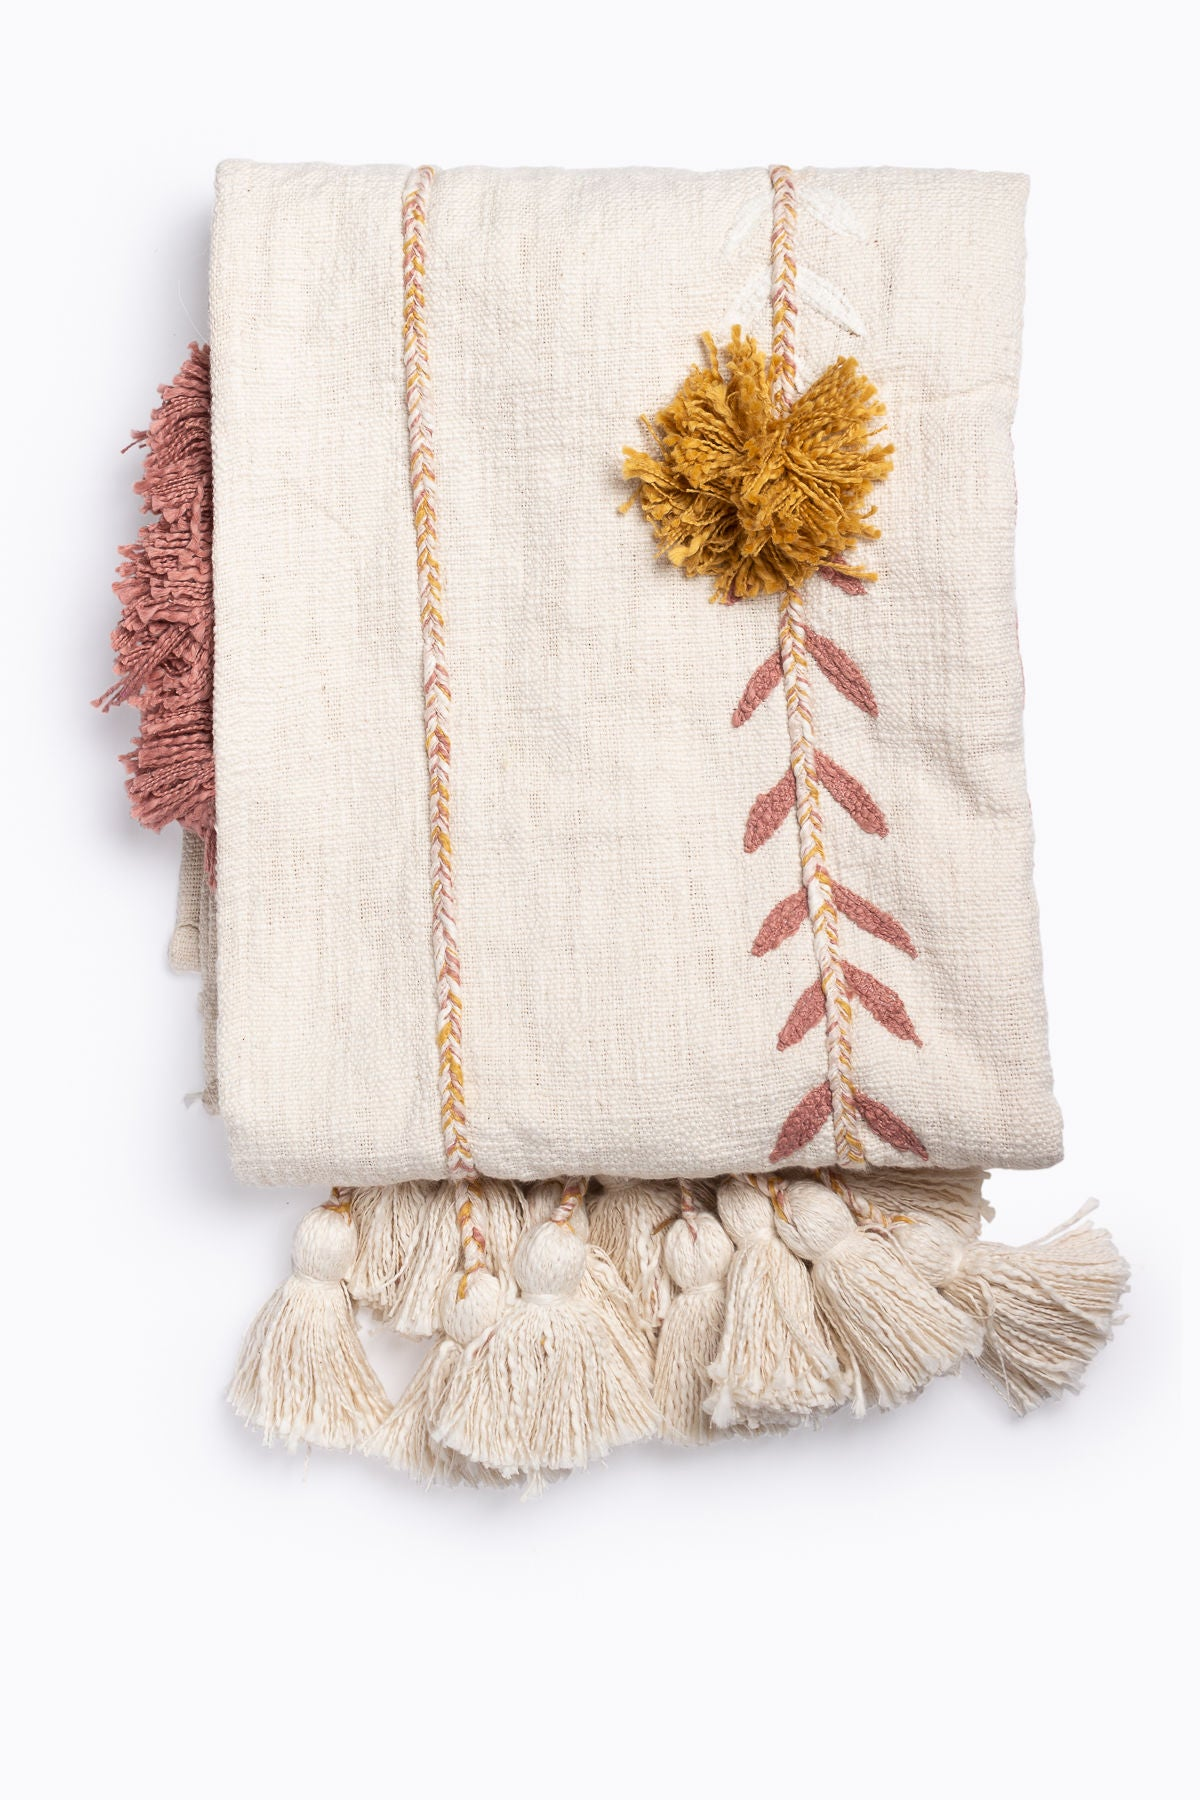 HOME: Cotton Embroidered Throw with Tassels in Cream